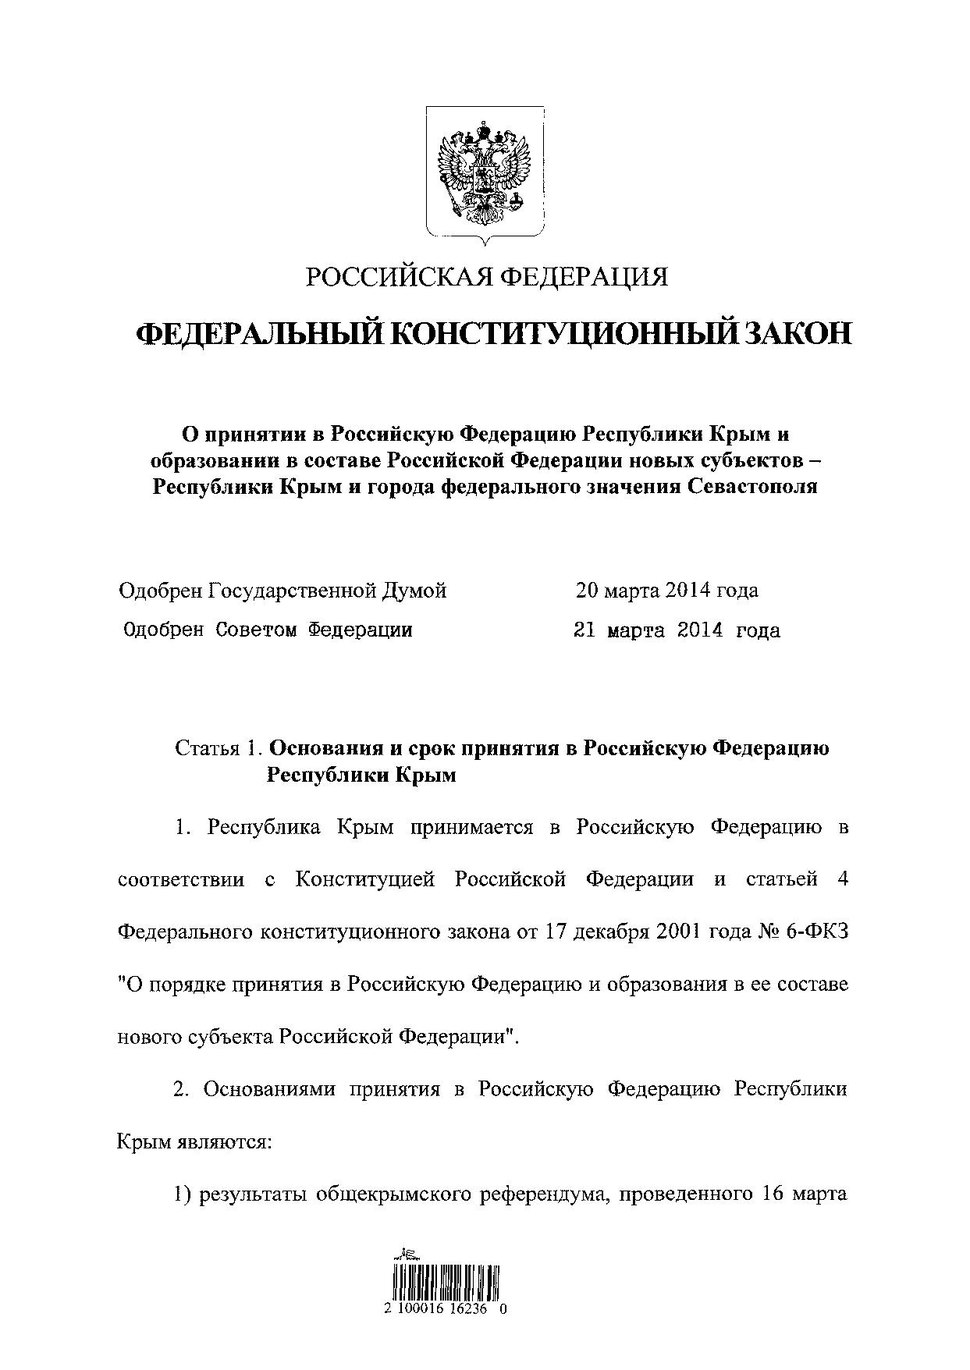 Federal Constitutional Law On Admitting to the Russian Federation the Republic of Crimea.pdf